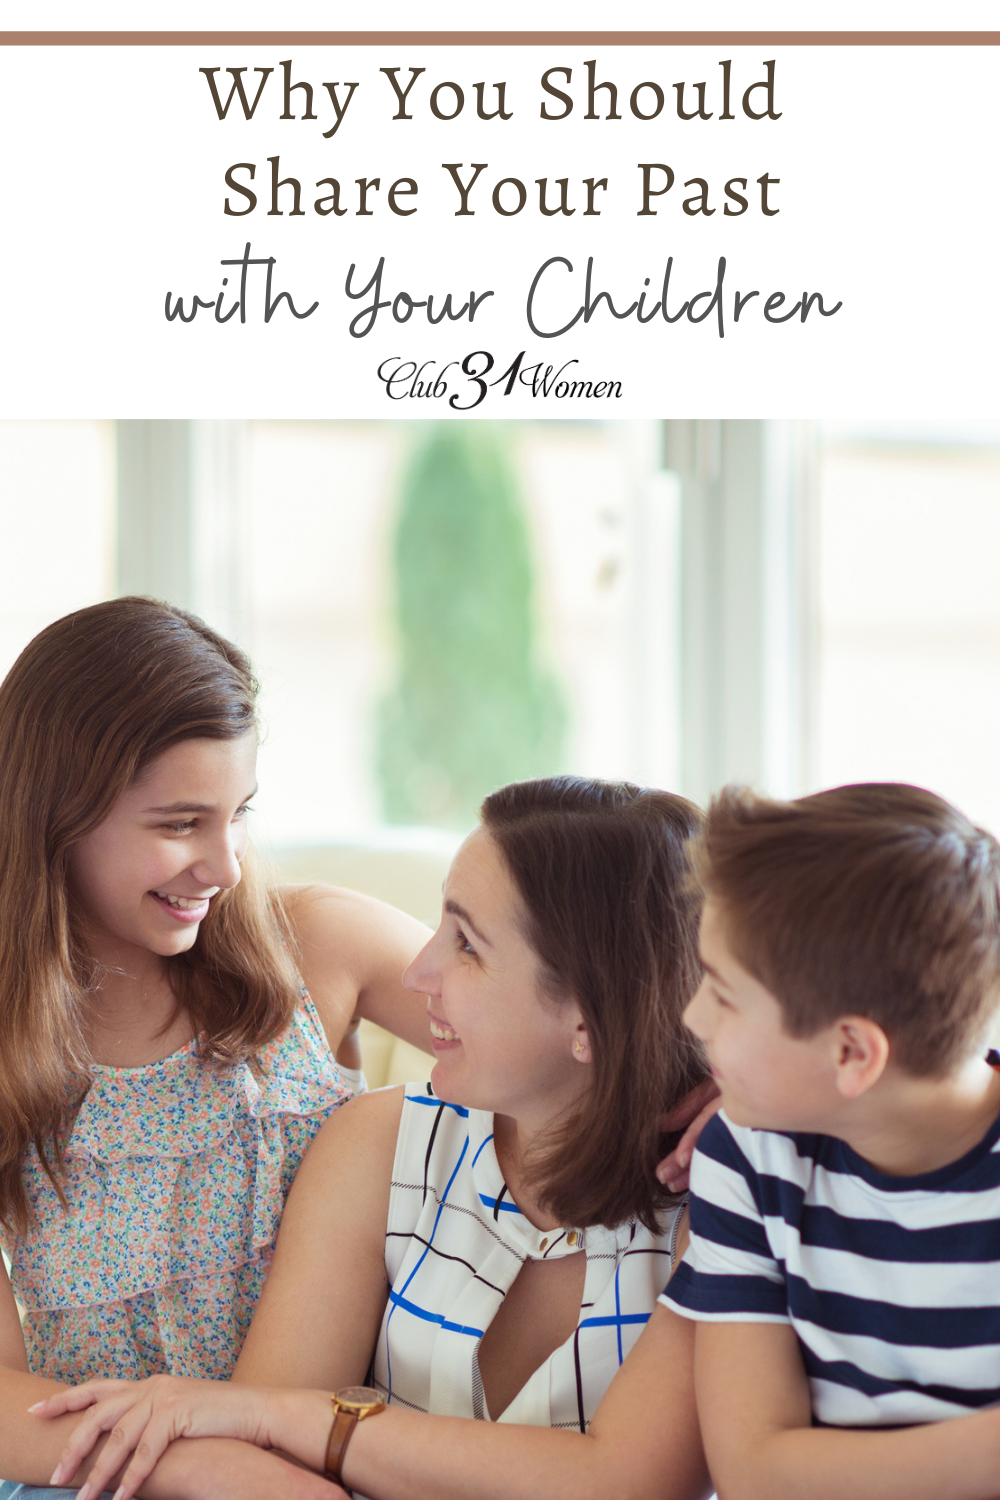 When you share your past with your children, it helps you form a connection and allows them to know you may understand their struggles. via @Club31Women